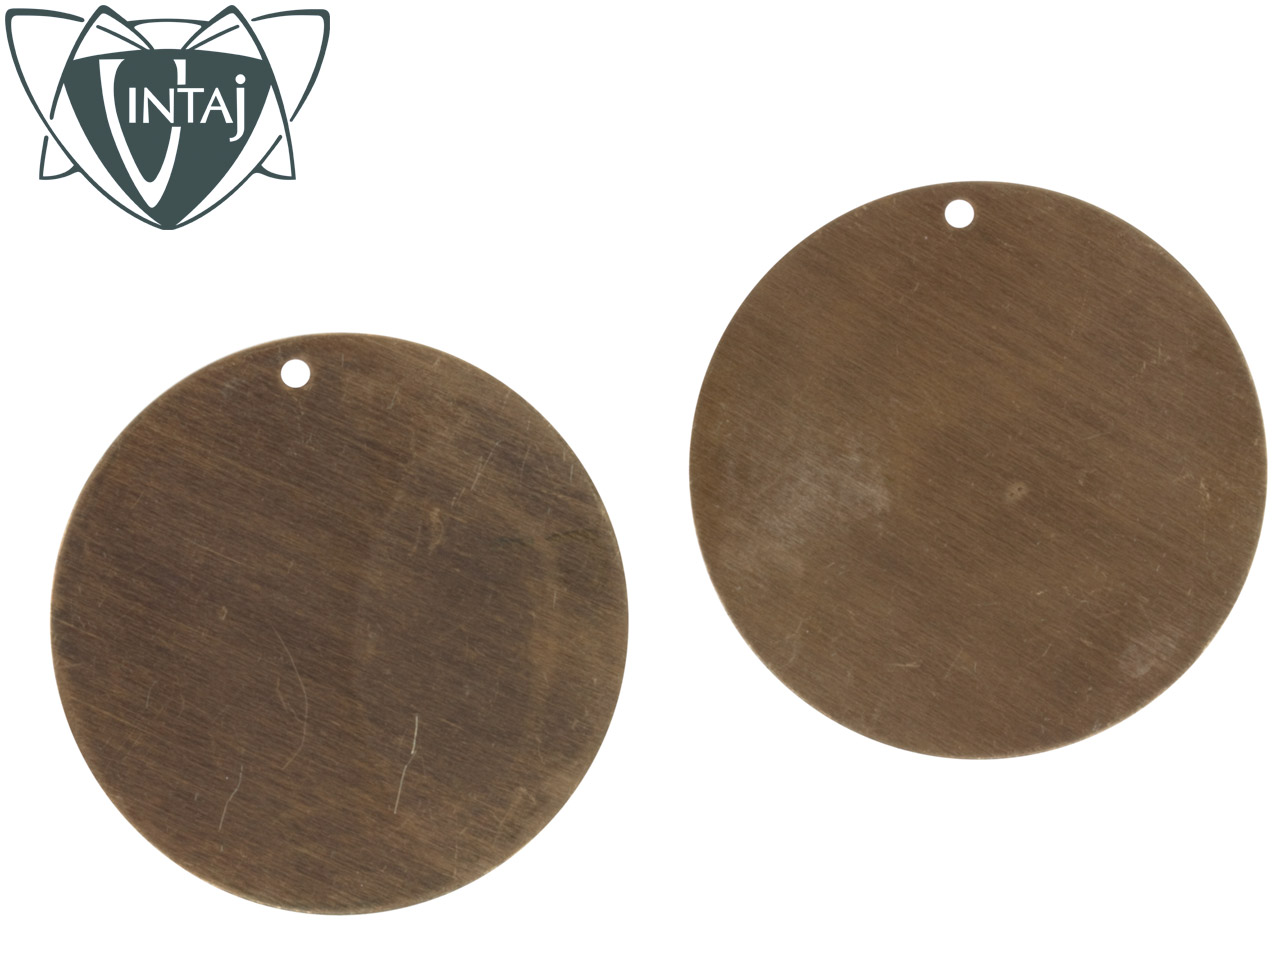 Vintaj Brass Altered Blank Circle 34mm Pack of 2